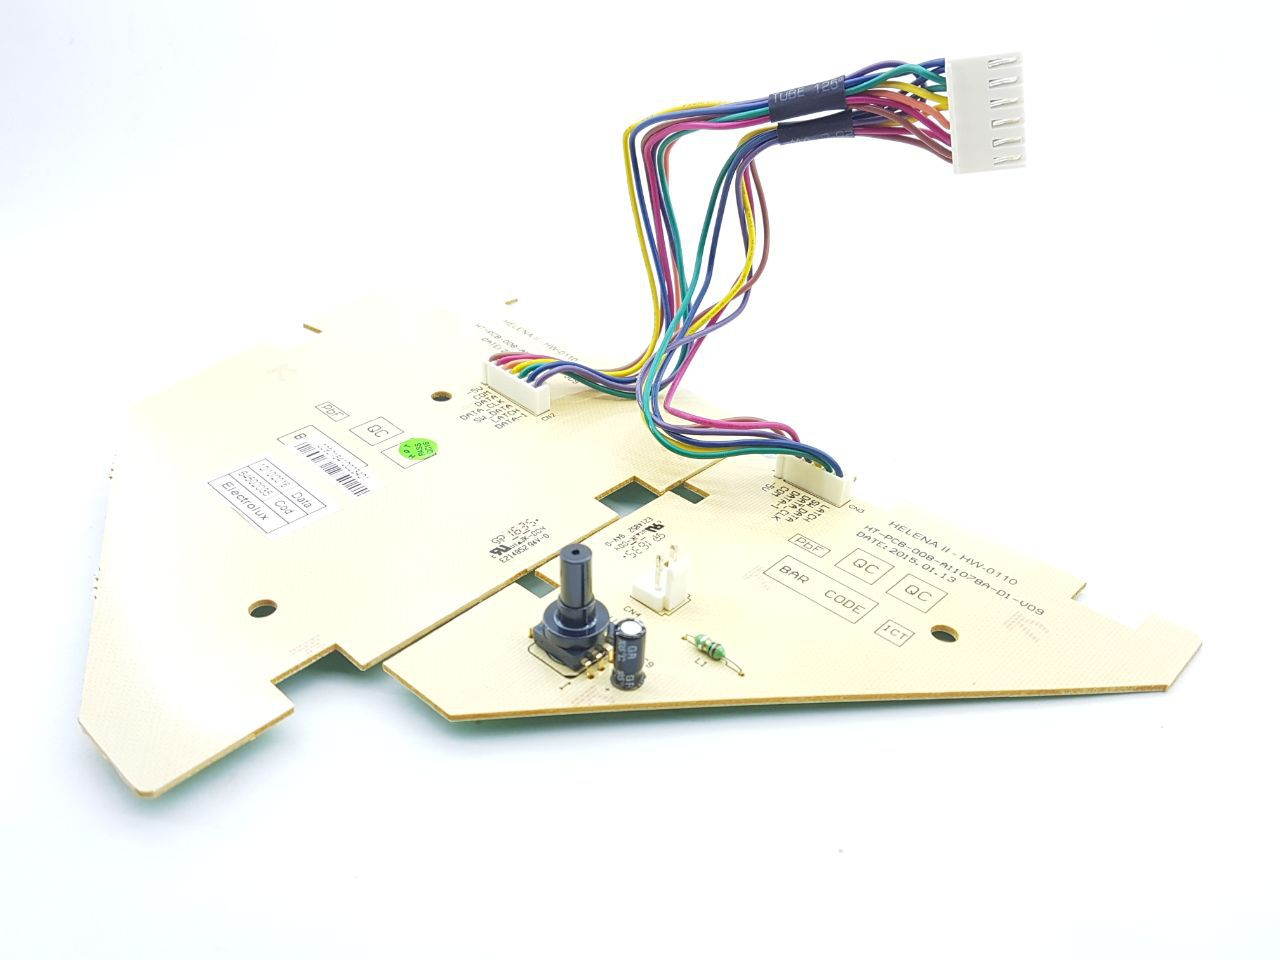 Placa Interface Electrolux Ltp12 Lp12q Ltp15 64502035 Orig.